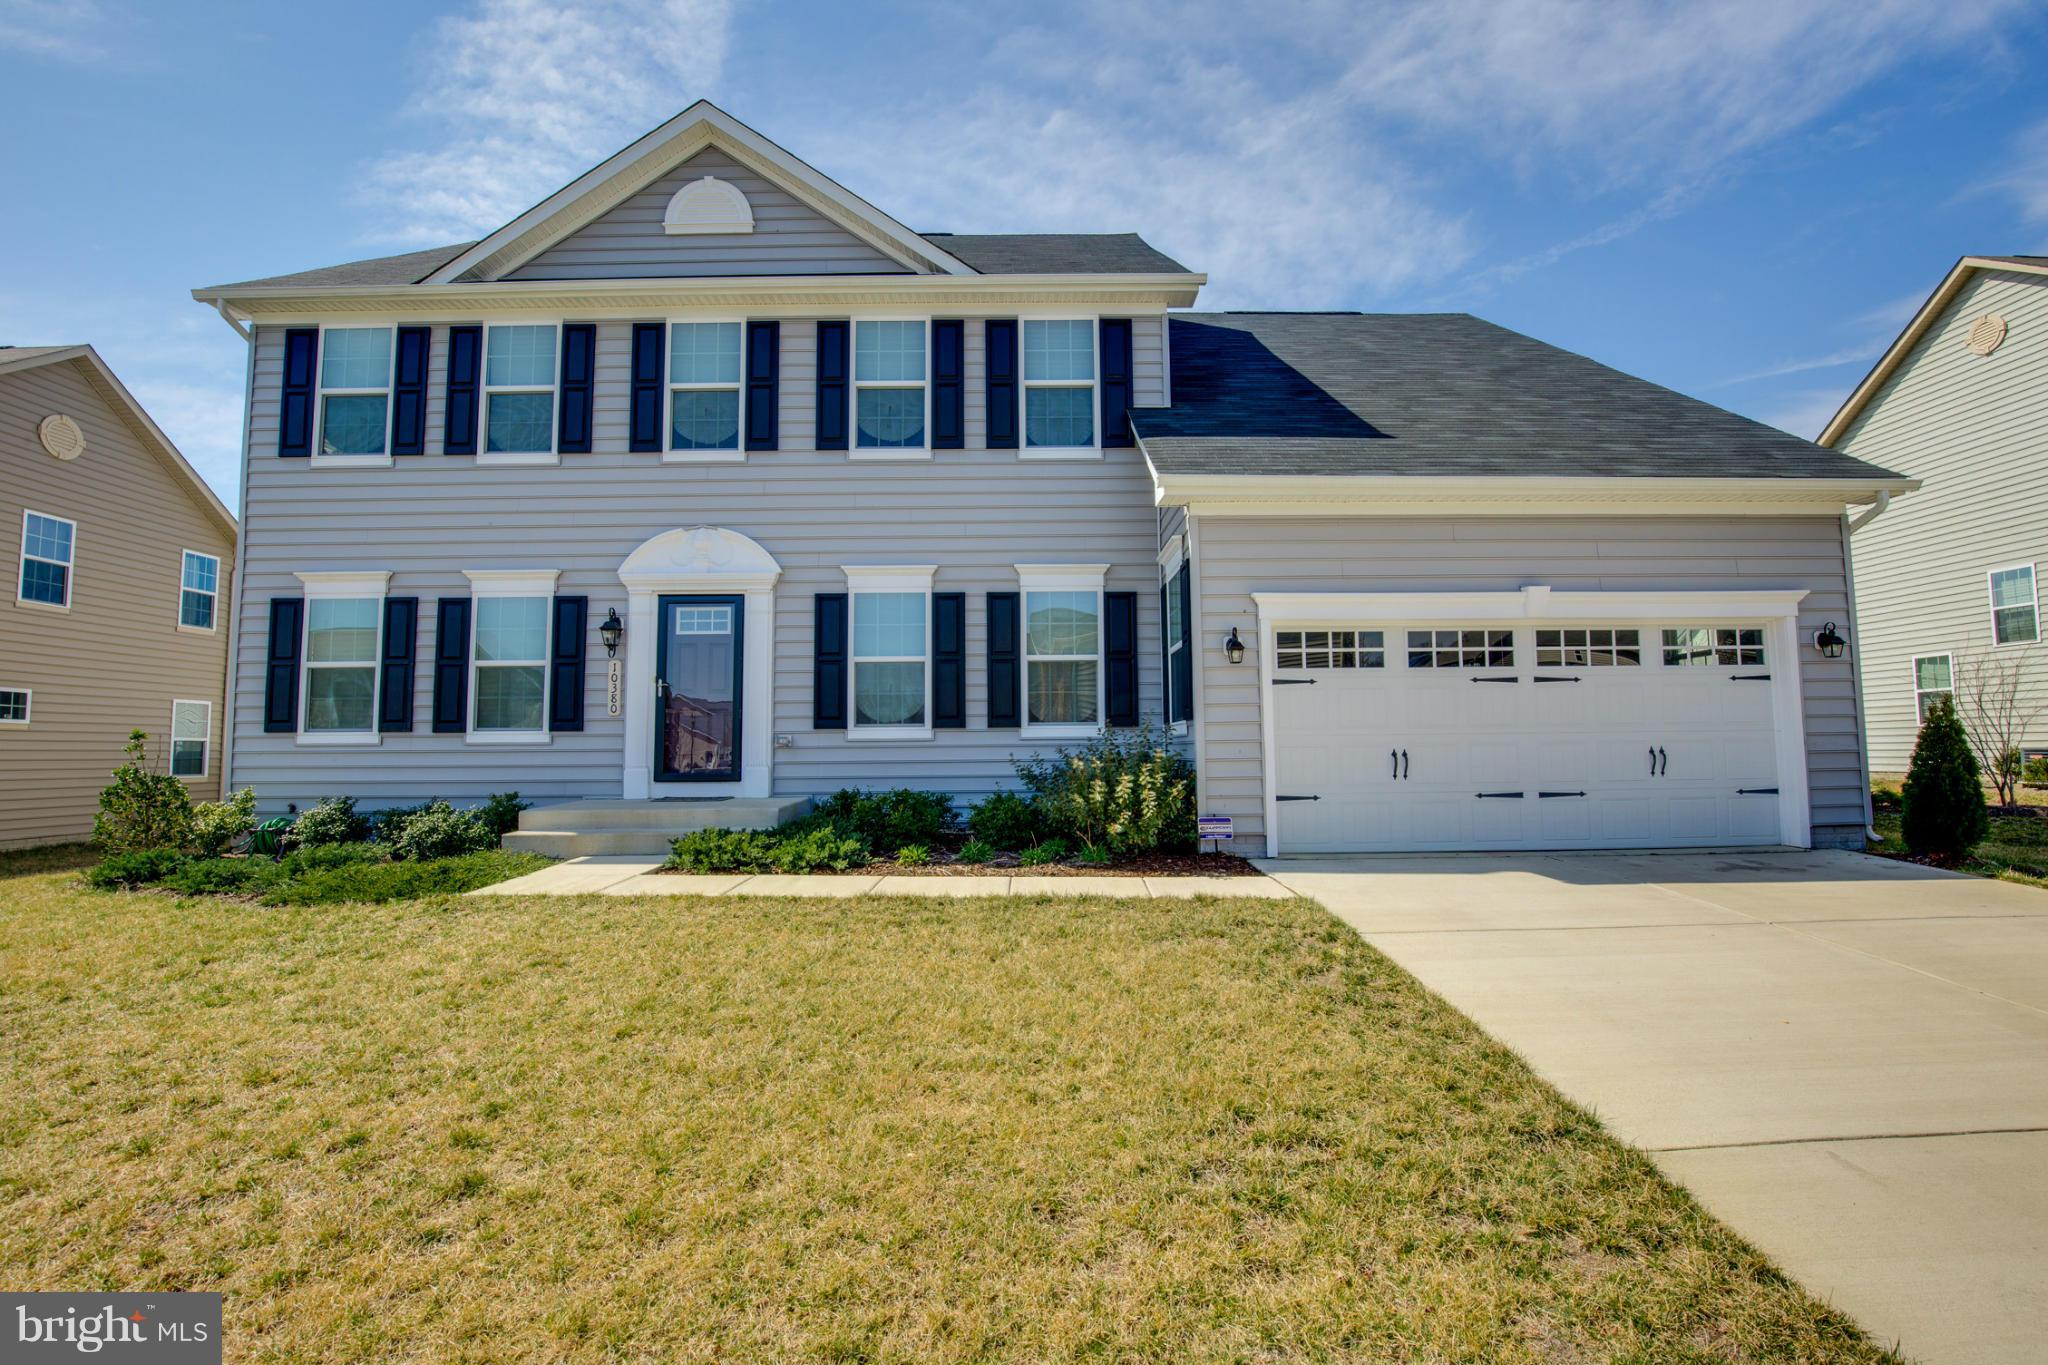 Stunning 2015 Custom built home with over 4500 finished sq./ft. on three levels. Open floor plan boasts gourmet kitchen with island, granite, Stainless Steal appliances, a mud room, sun room off of the kitchen, a formal dining room, formal living room & office/den. New Carpet in the Living Room.  Upstairs you will find 4 large bedrooms with 2 full baths and laundry room for ease. Relax in your spacious basement and enjoy family movie nights in the media room with space to build out an additional bedroom and full bath if desired.  Sellers did not skimp in upgrades and this is a definite must see today!!